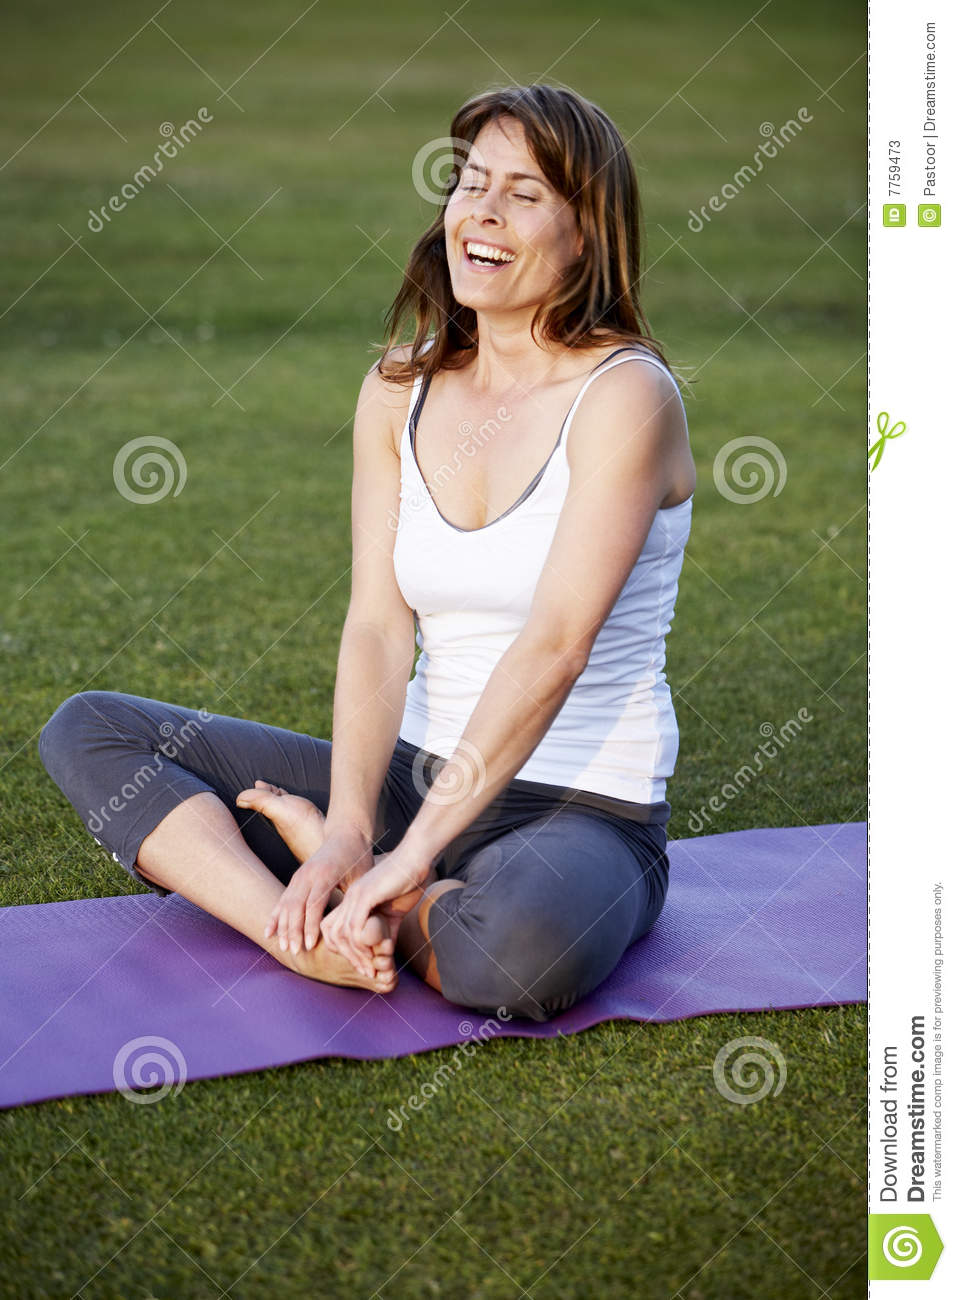 Happy woman in yoga position